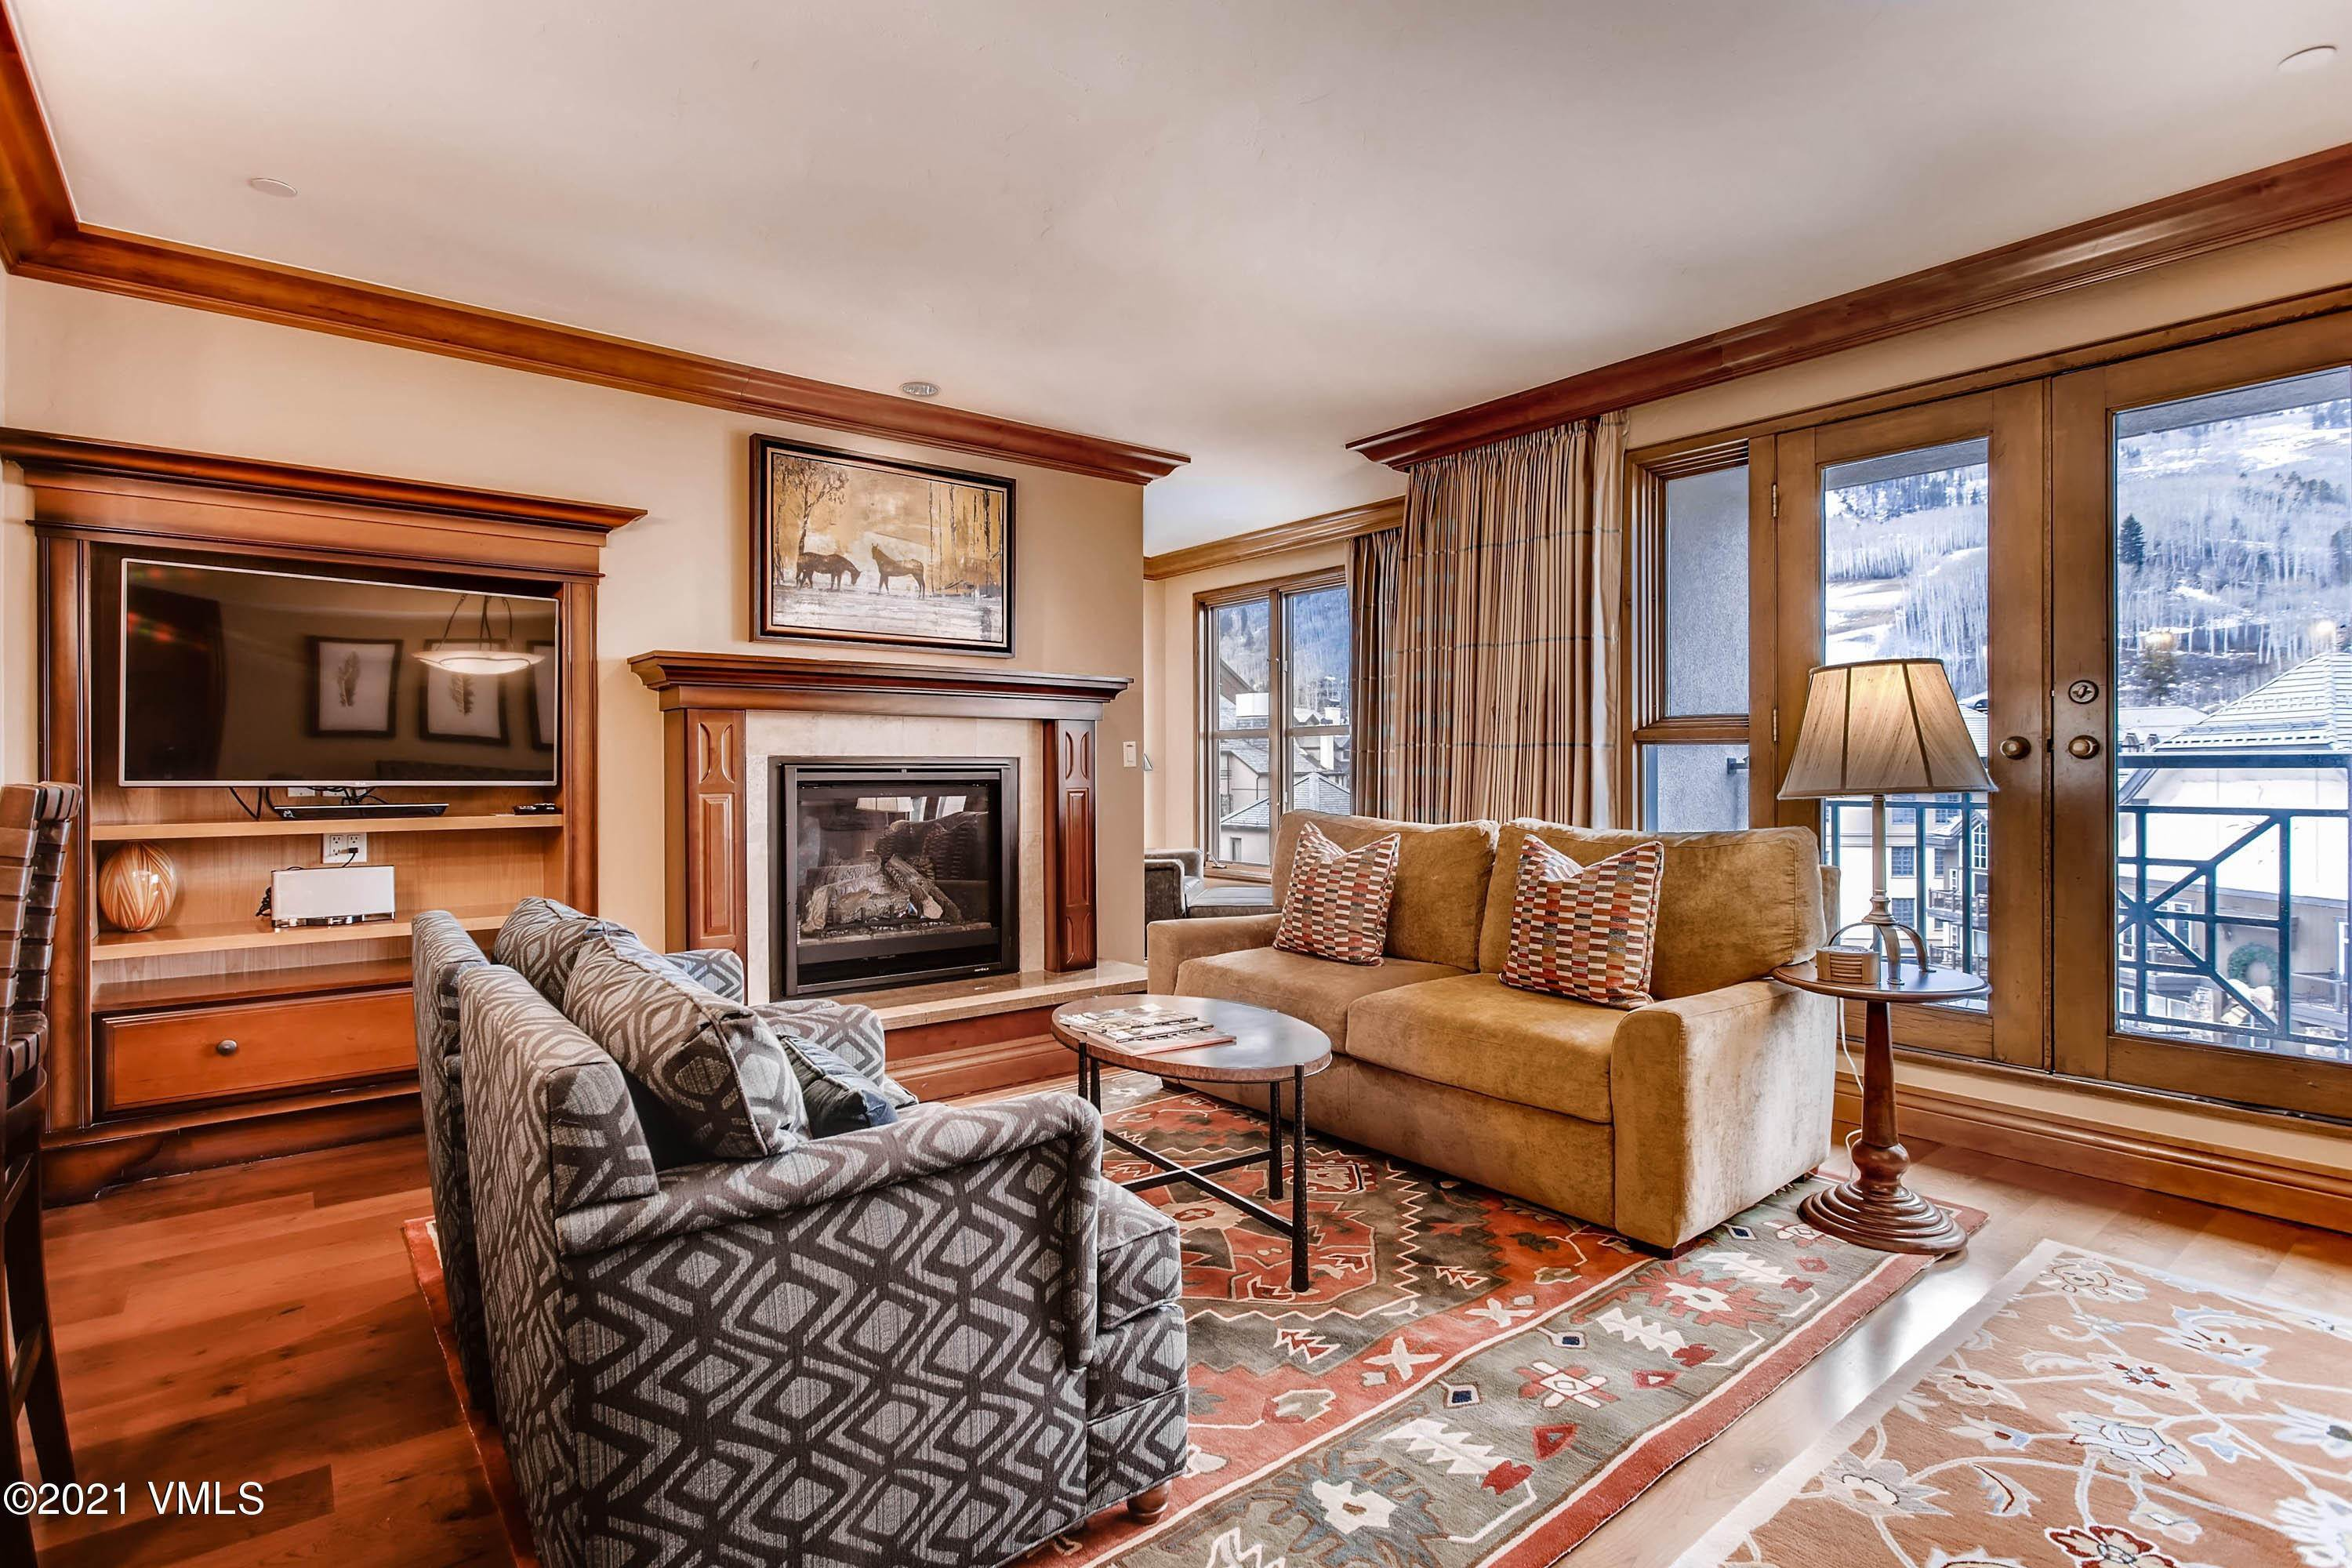 fractional ownership prop for Active at 100 Thomas Place Beaver Creek, Colorado 81620 United States